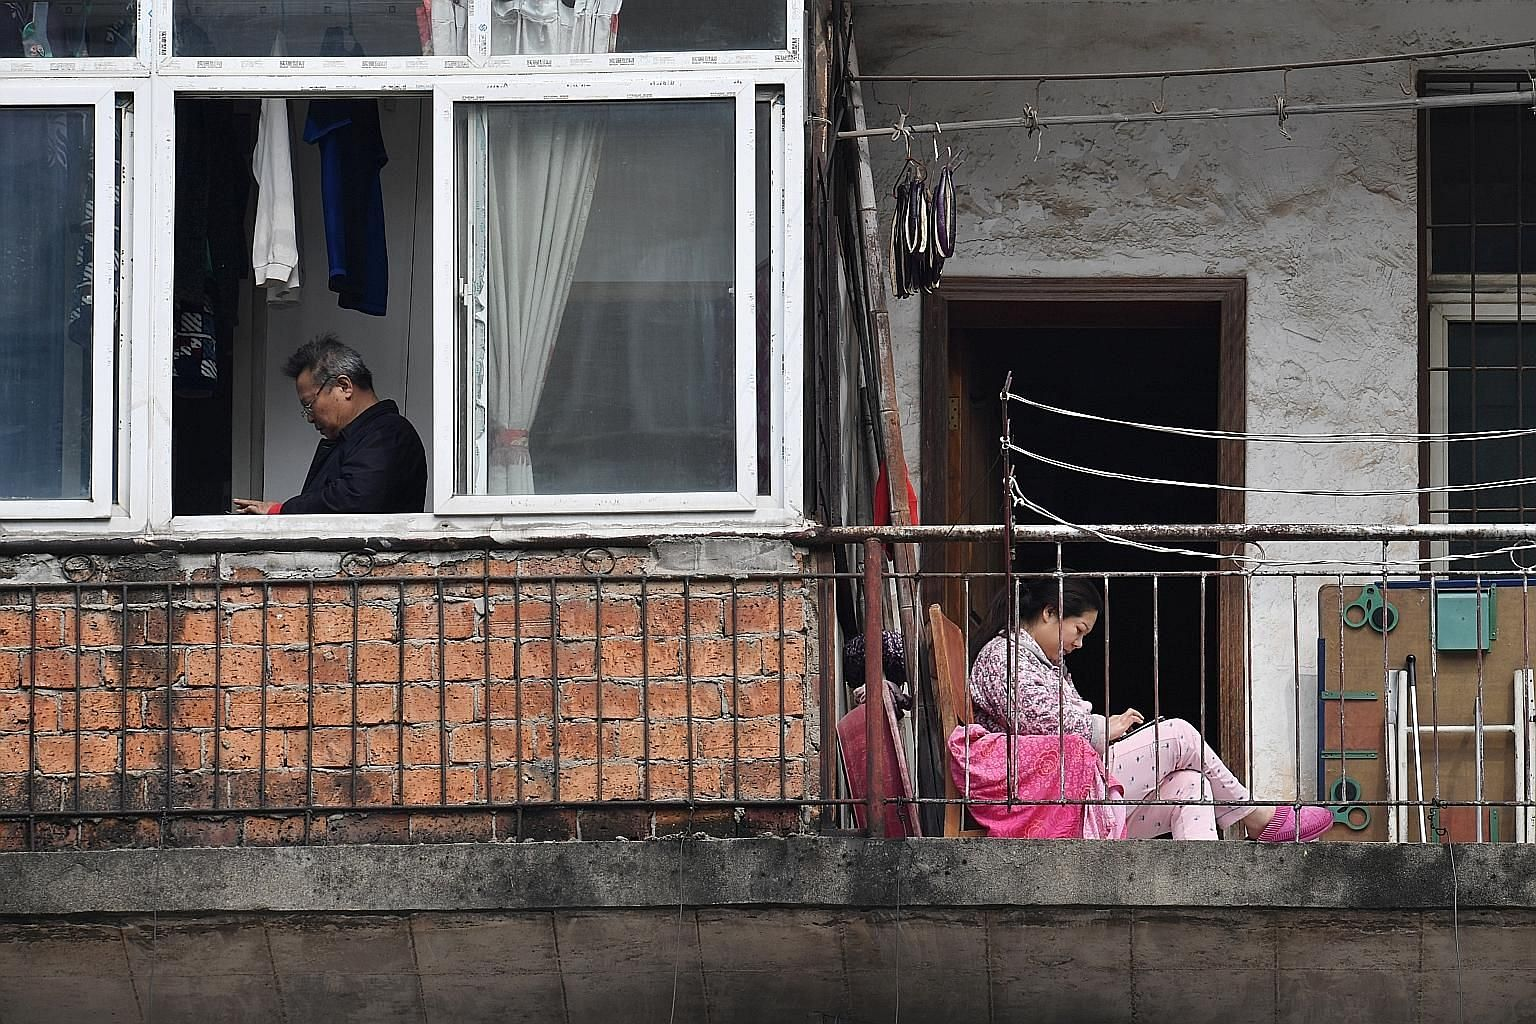 People at a residential compound in Wuhan, Hubei province, on March 10. As new Wuhan party secretary Wang Zhonglin's mandate was to contain the epidemic, he is still perceived by the party to have done his job despite the gaffes, insiders said. He ma